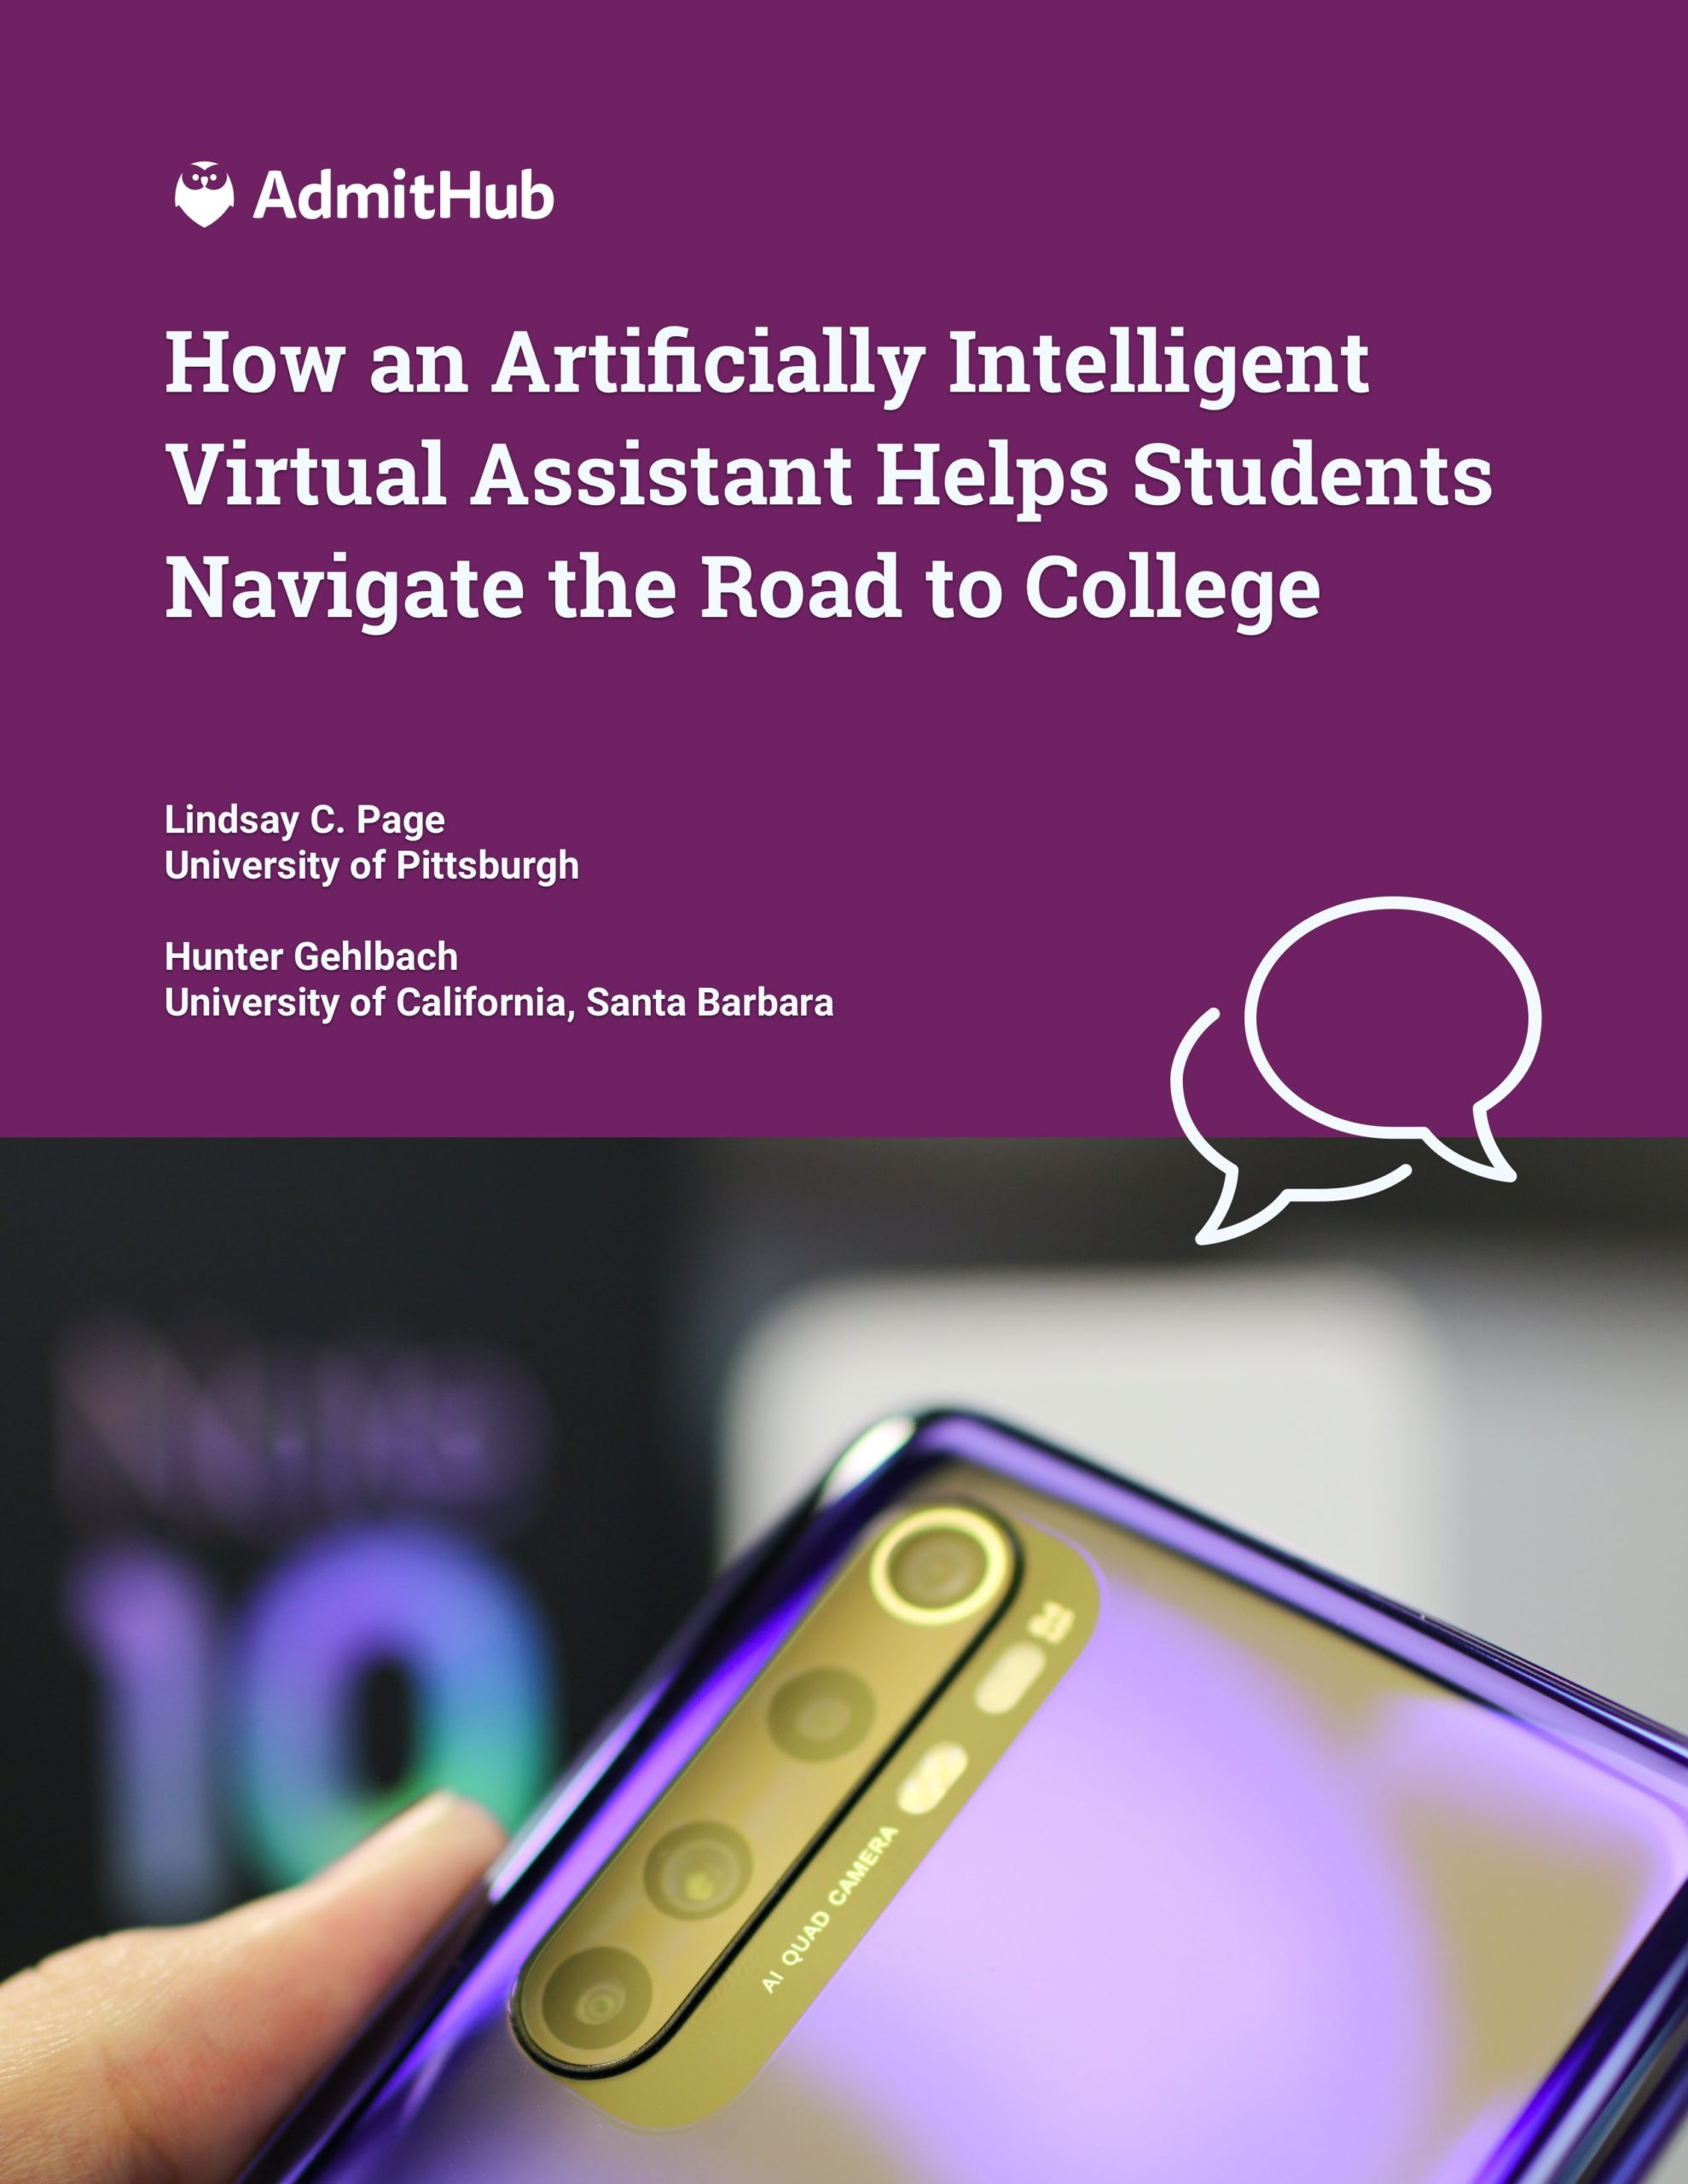 How an Artificially Intelligent Virtual Assistant Helps Students Navigate the Road to College